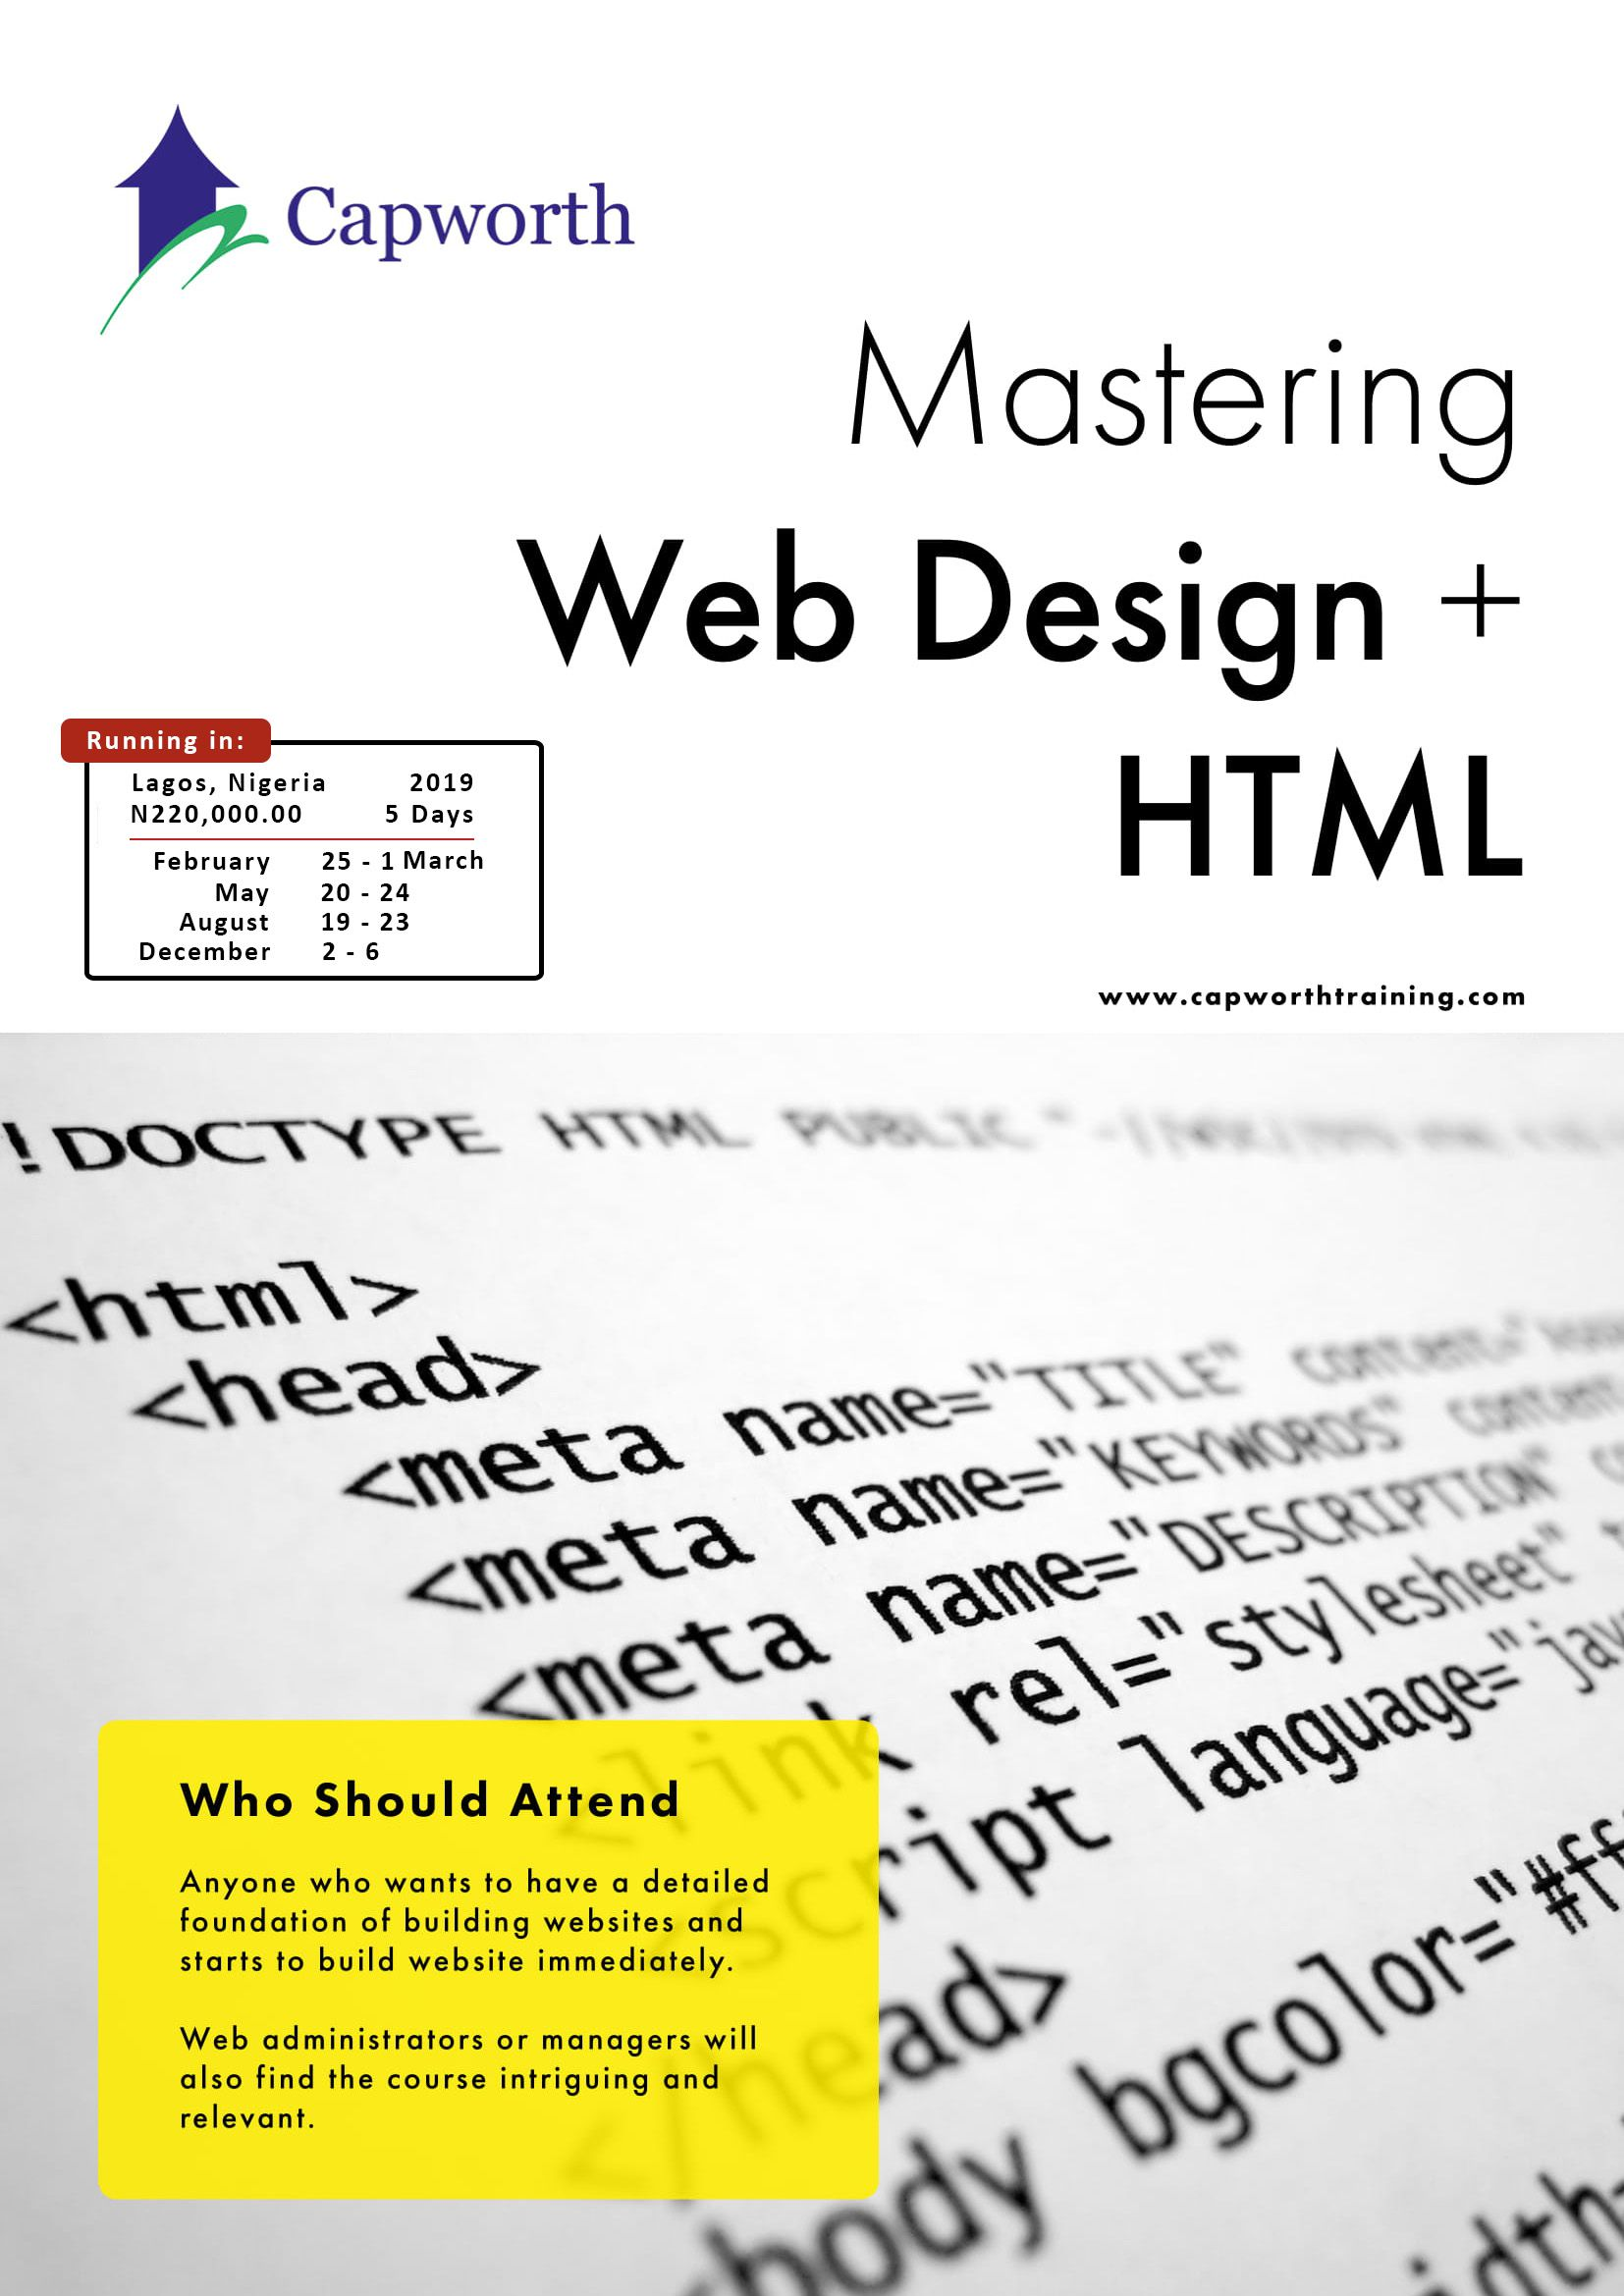 Mastering Web Design and HTML - ICT_Page_1.jpg